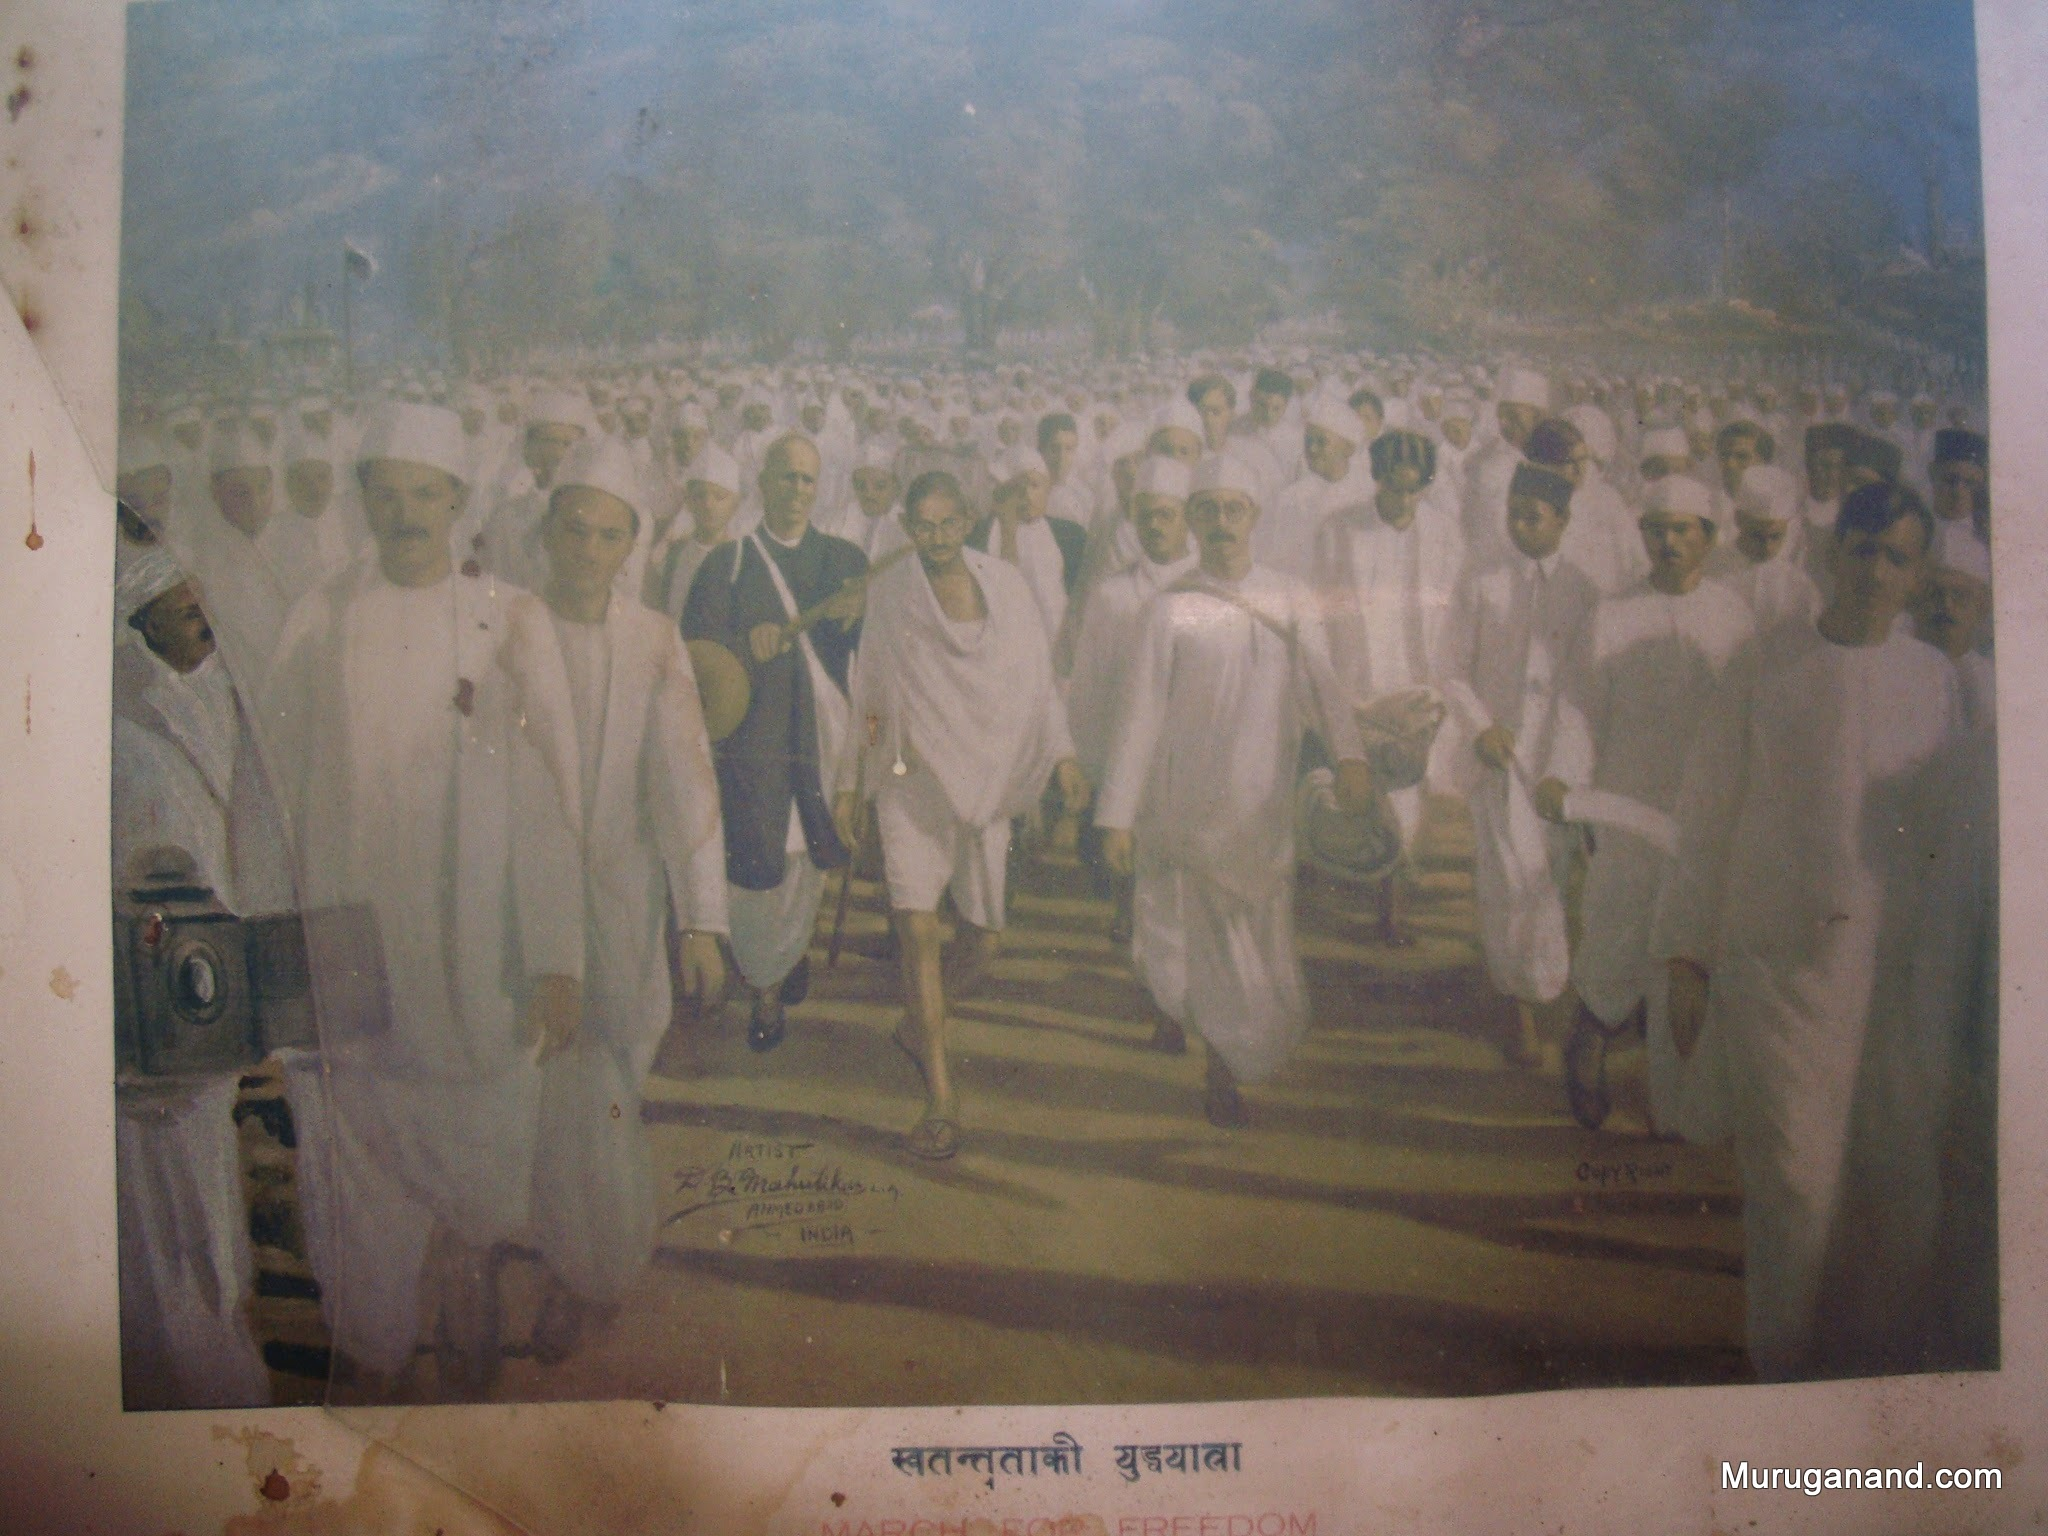 Another vintage art- Gandhi and his followers